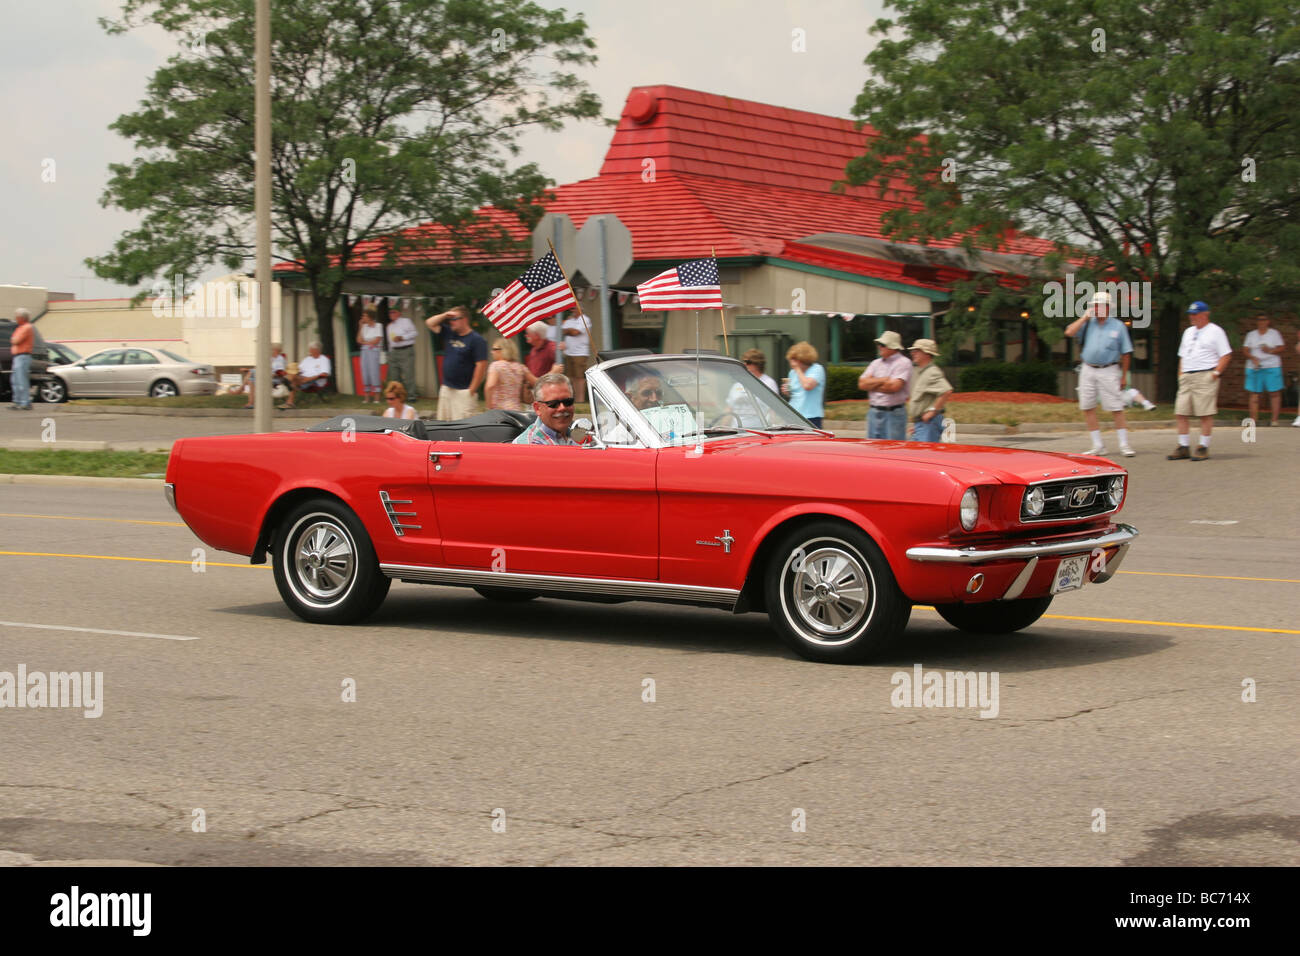 1960s mustang stock photos 1960s mustang stock images alamy. Black Bedroom Furniture Sets. Home Design Ideas